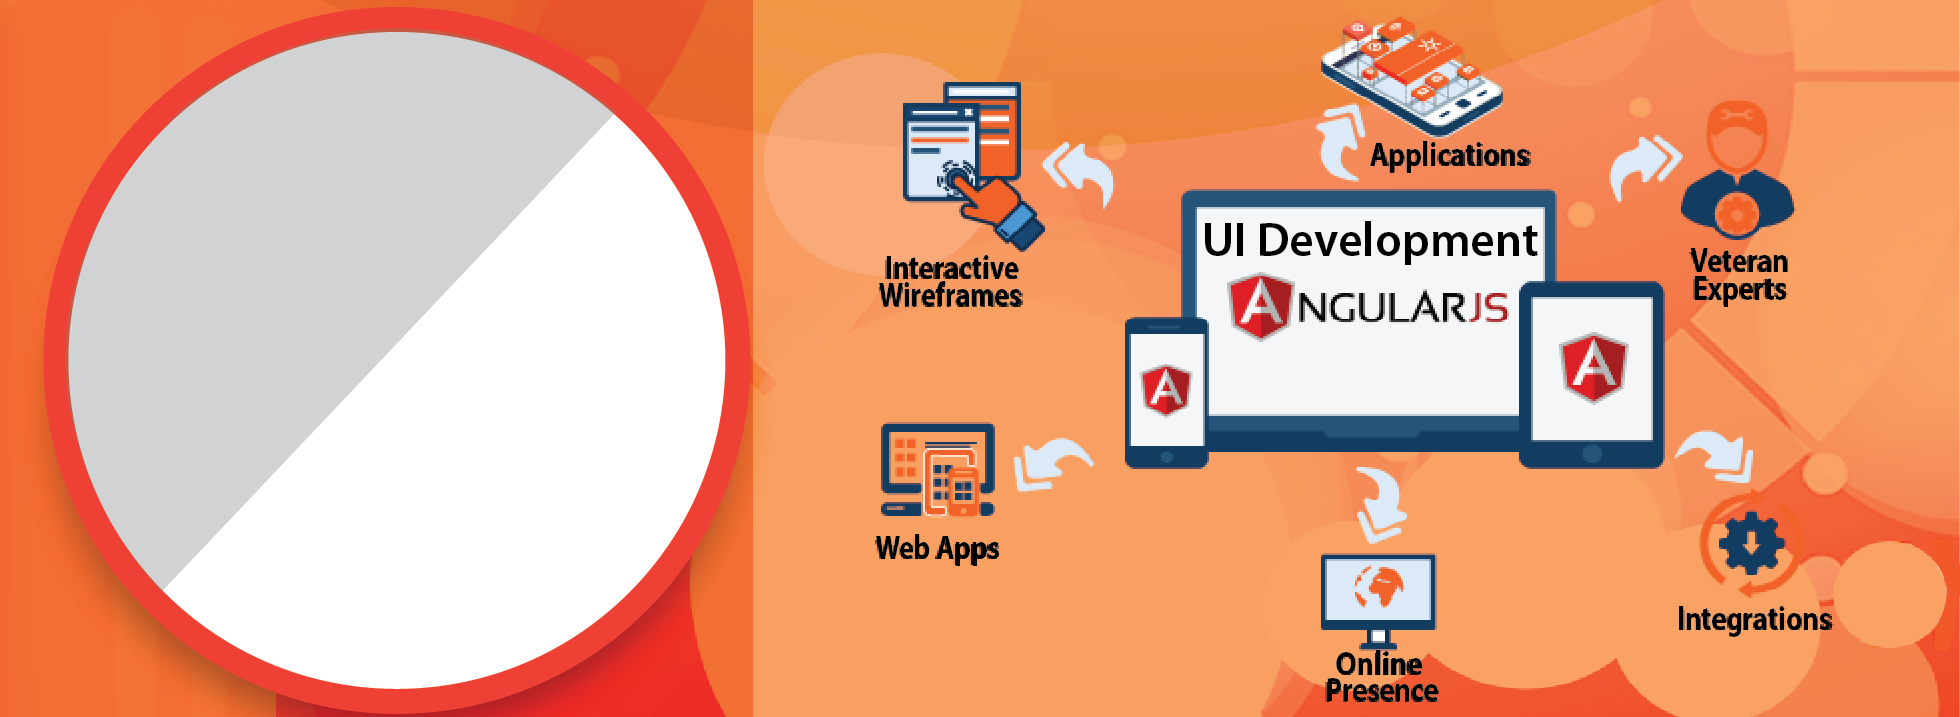 AngularJS training course in Gurgaon